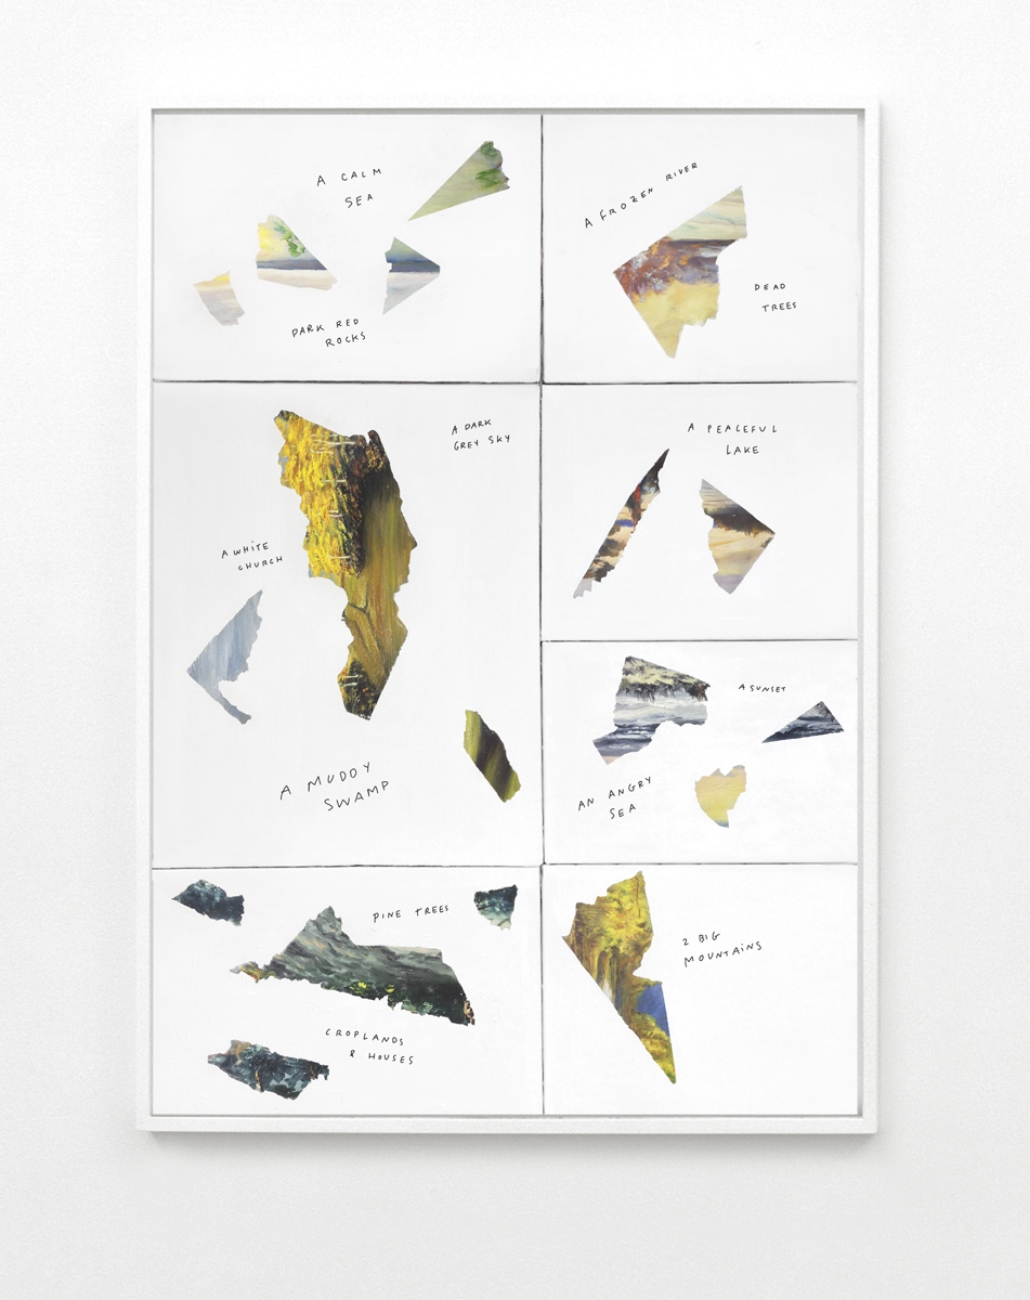 THE LOST IMPRESSIONS, N.02 , Seven found untitled/unsigned paintings, gesso and pen on multiple canvas, 2015 @ Claude Eigan